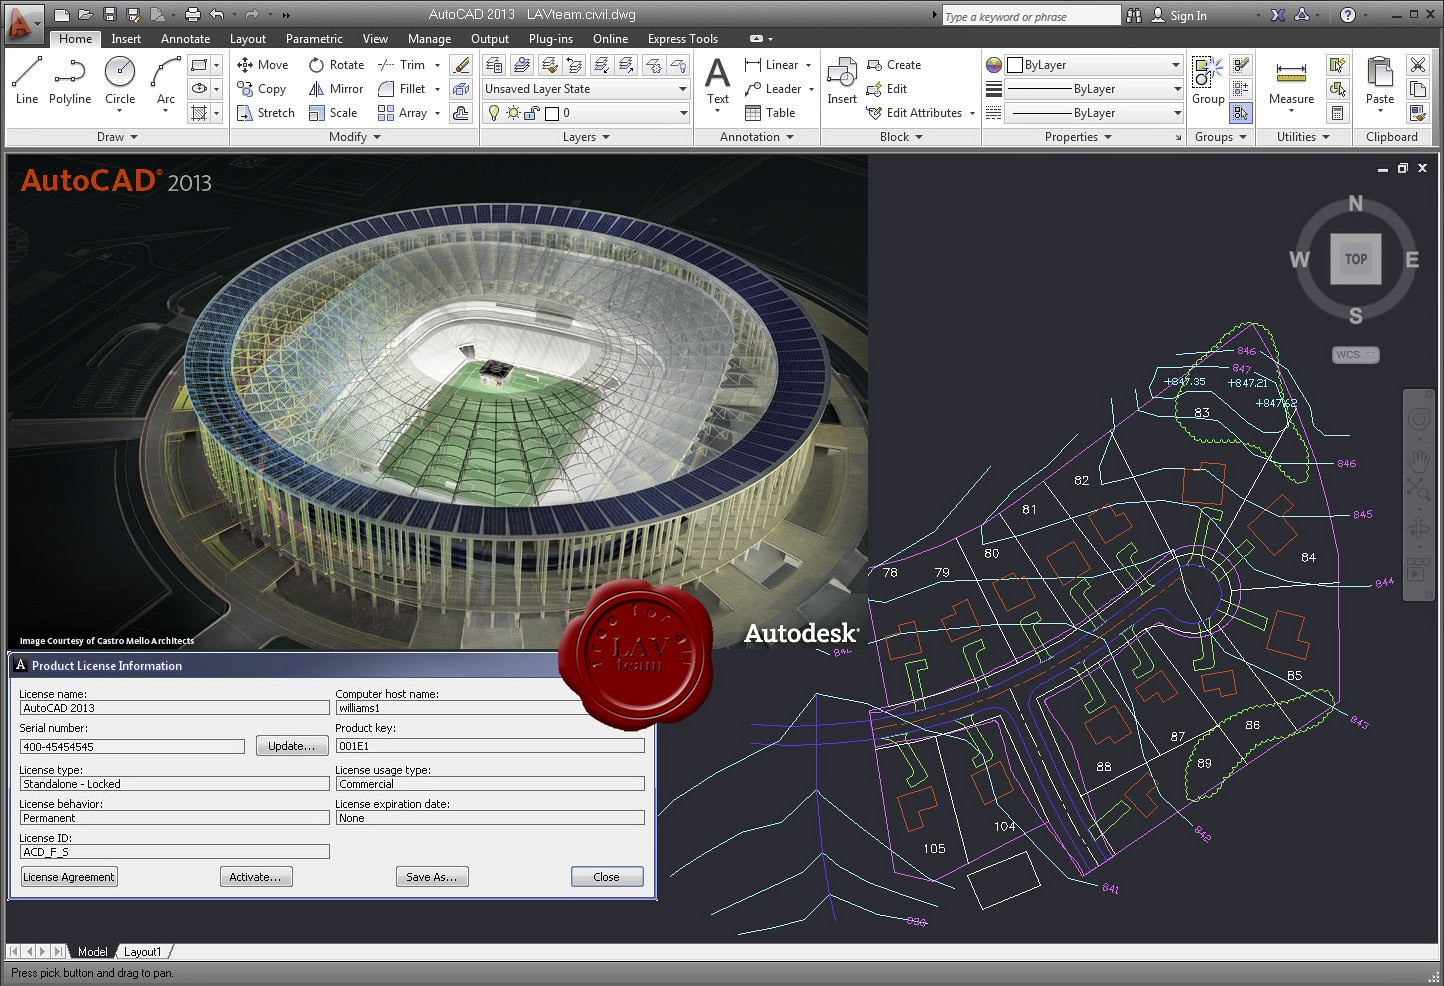 autocad 2016 keygen free download 64 bit